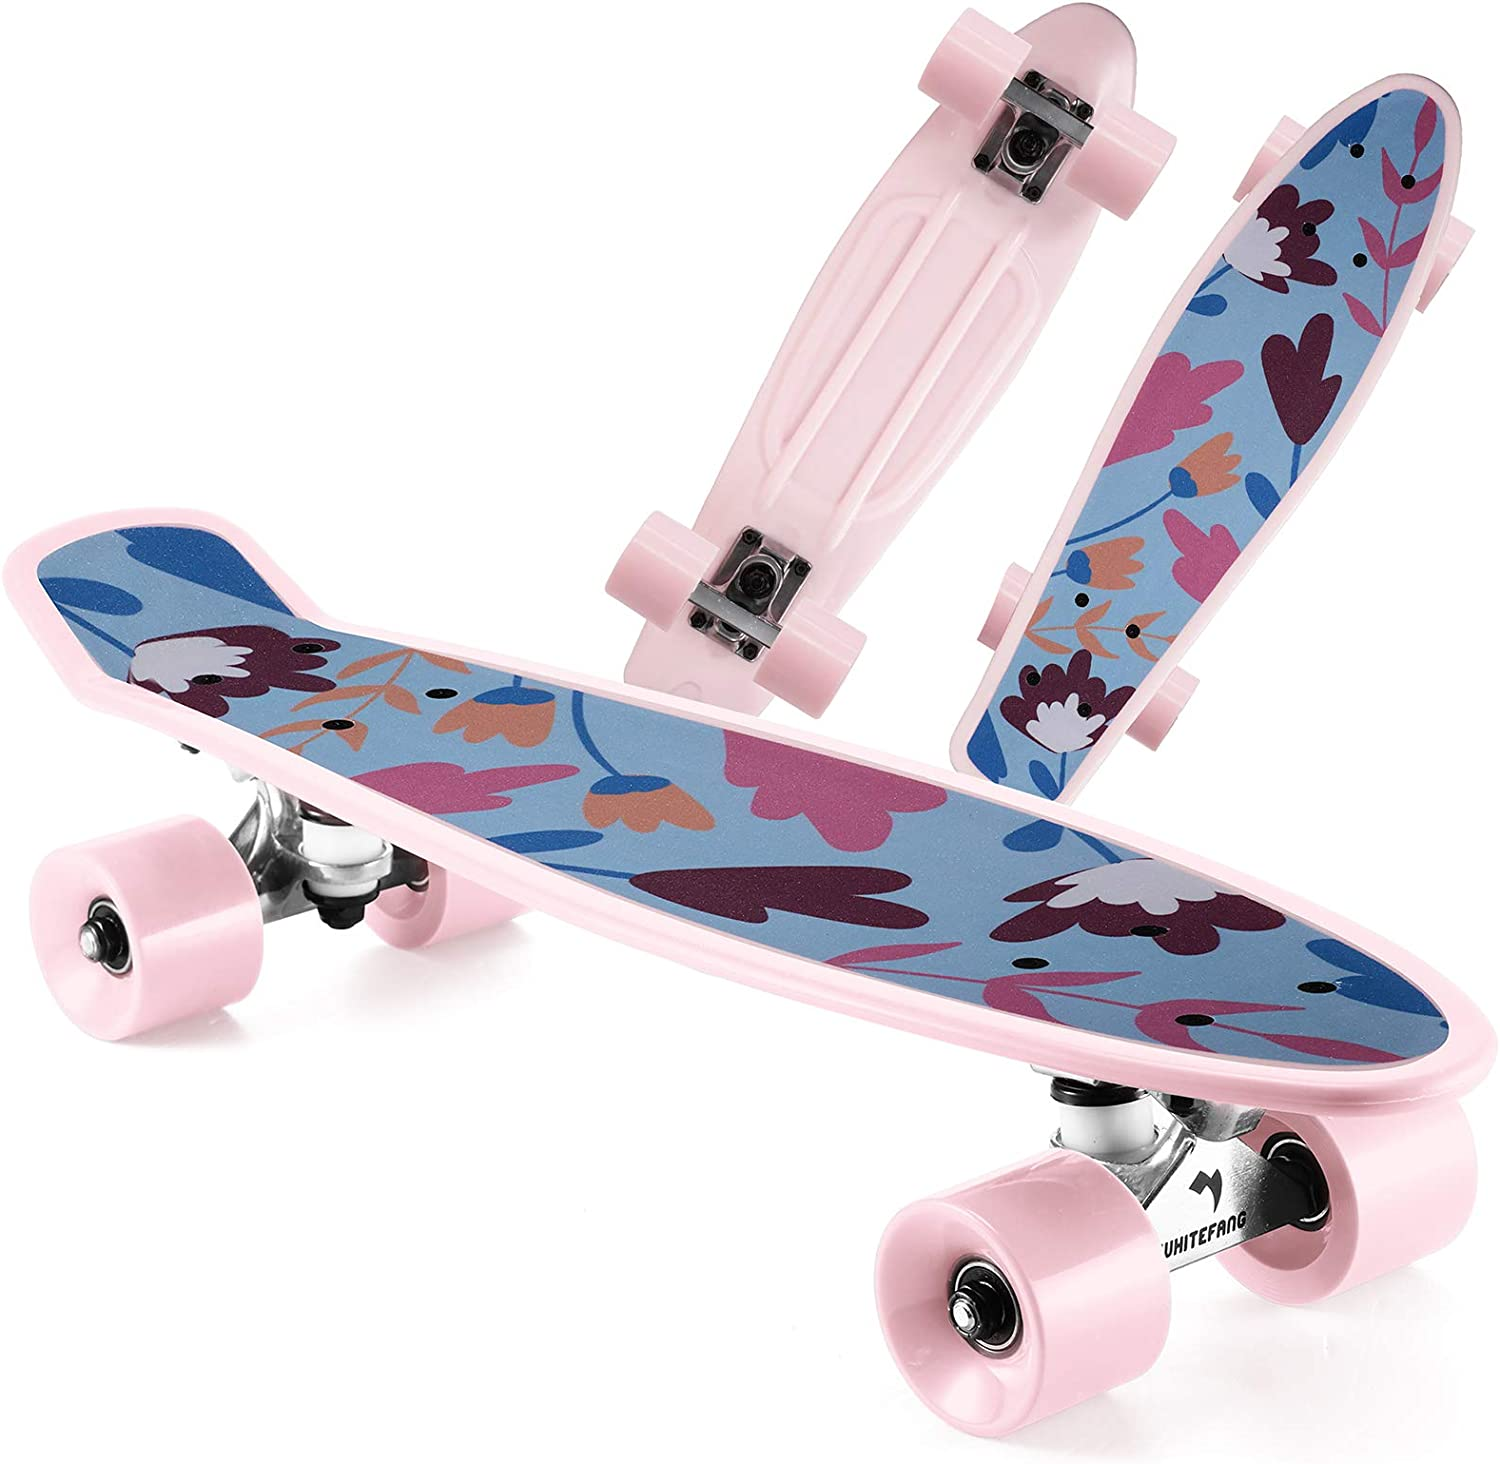 shipfree WhiteFang Skateboards Popularity 22 inches Kids Skateboard Colorful PU with